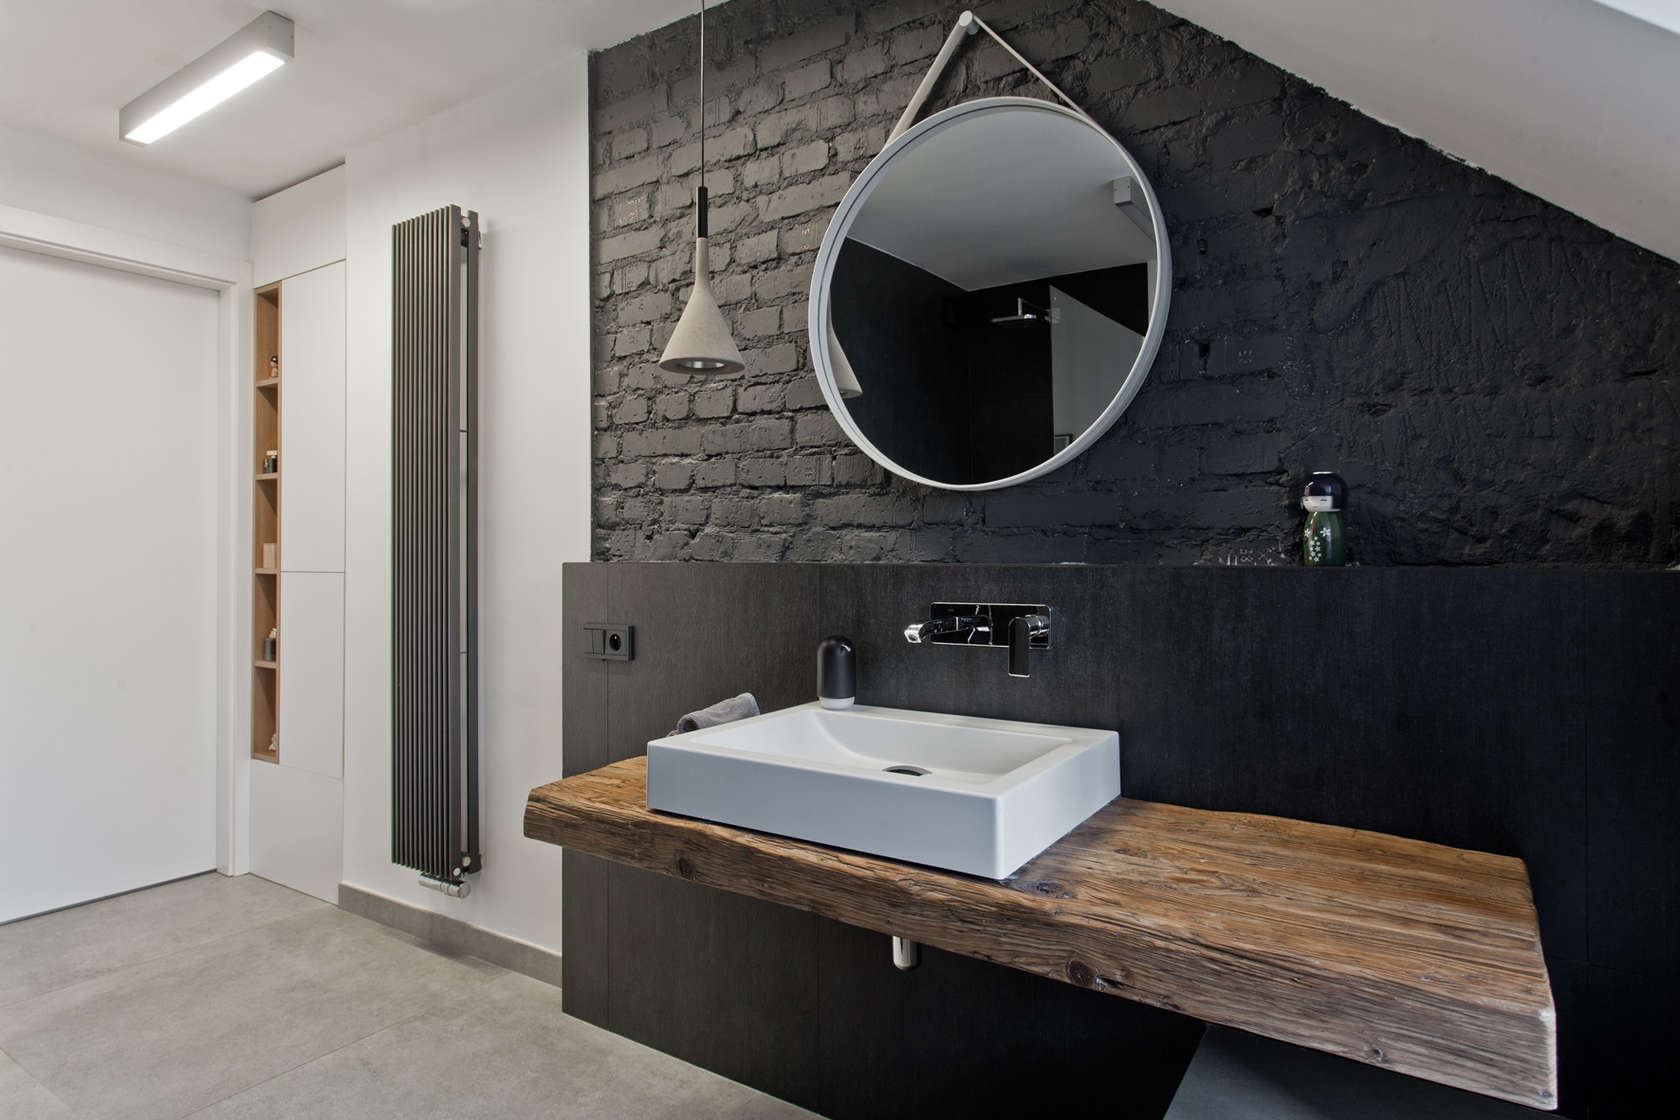 Black Painted Bricks - An old attic is transformed into a gorgeous apartment